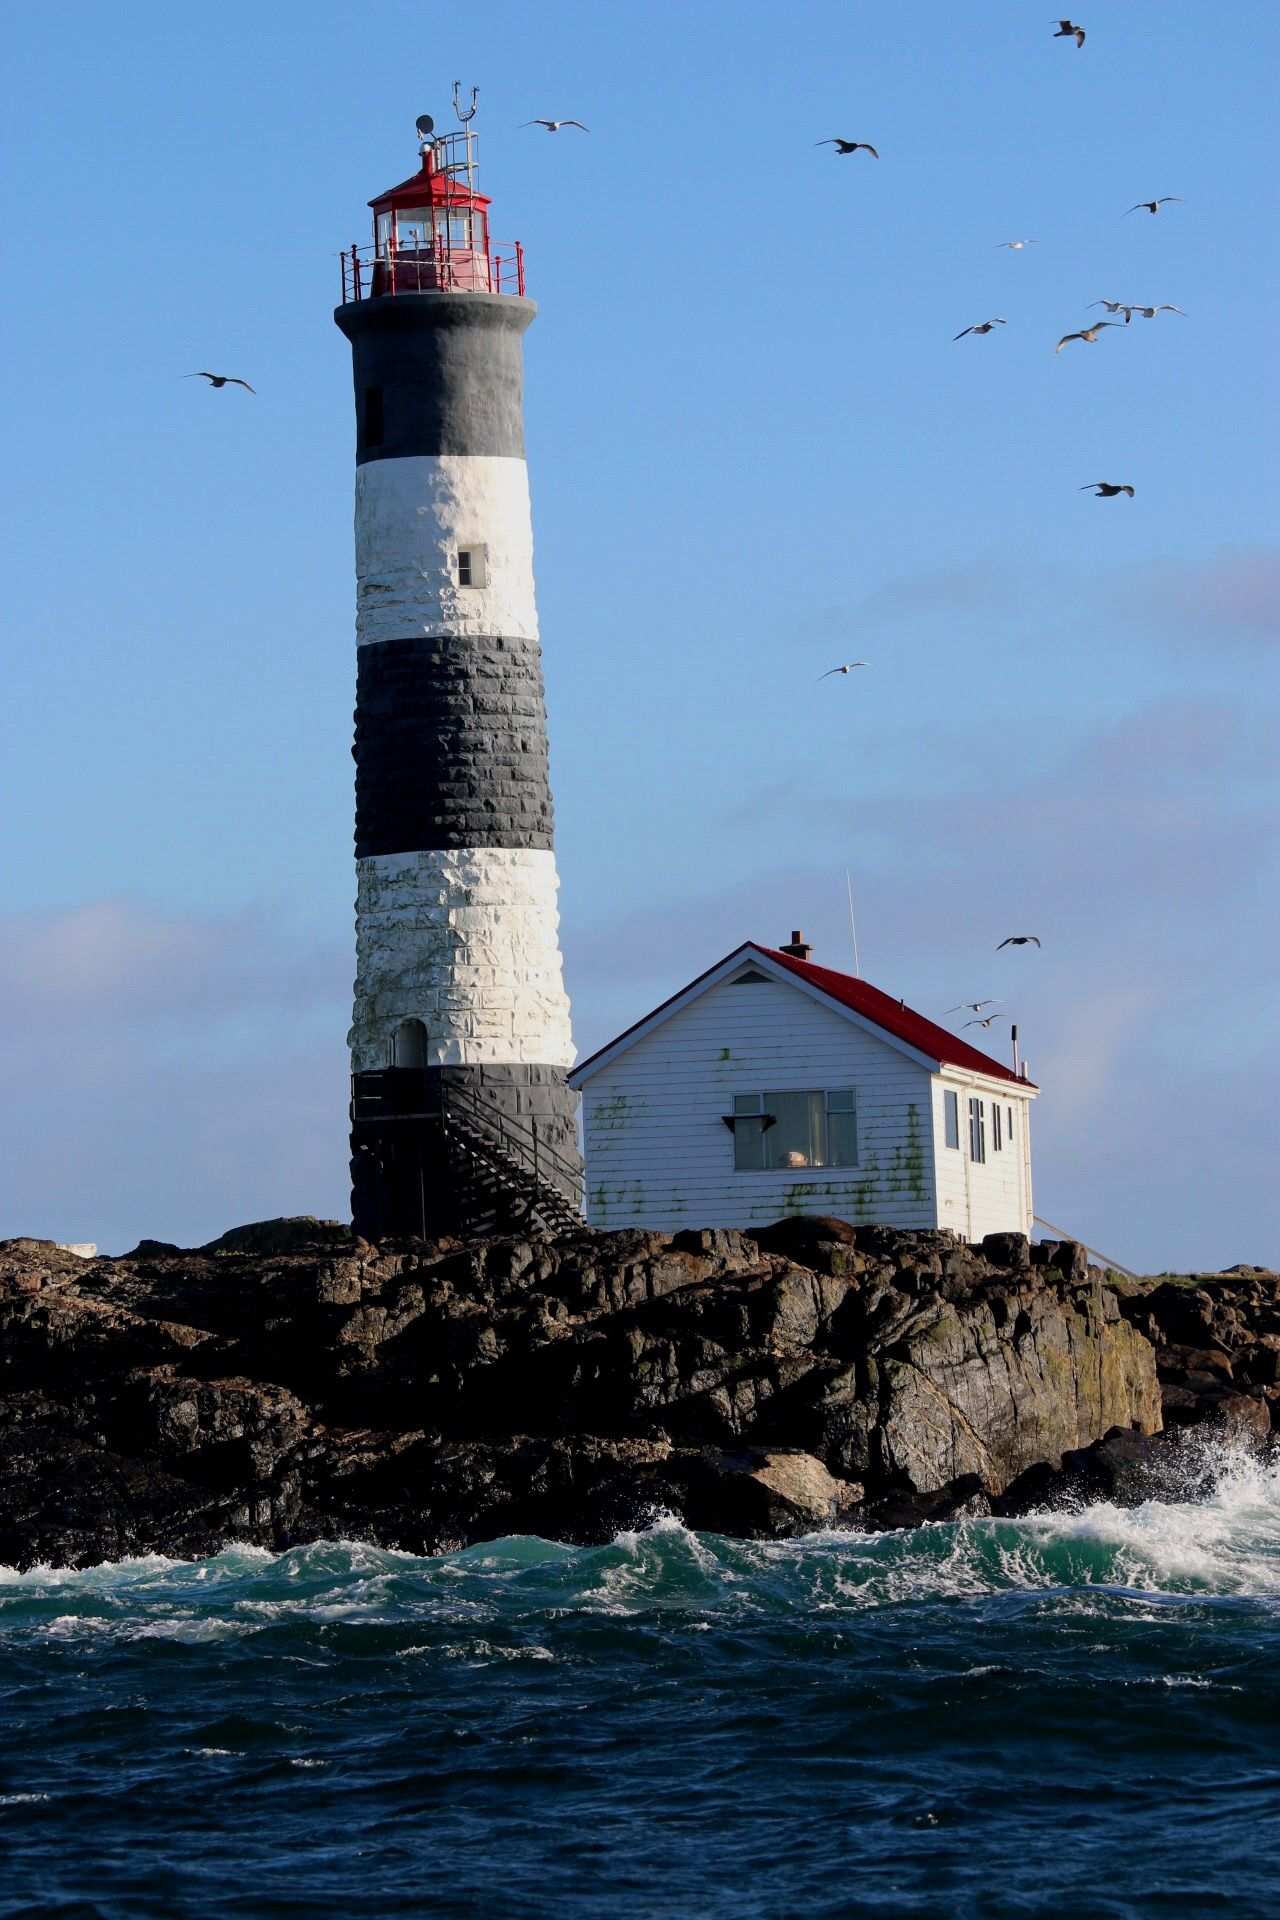 Lighthouse Built Structure Architecture Sea Building Exterior Guidance Water Direction Waterfront Tranquility Outdoors Nature No People Day Sky Beauty In Nature Ocean British Columbia Victoria Rippled